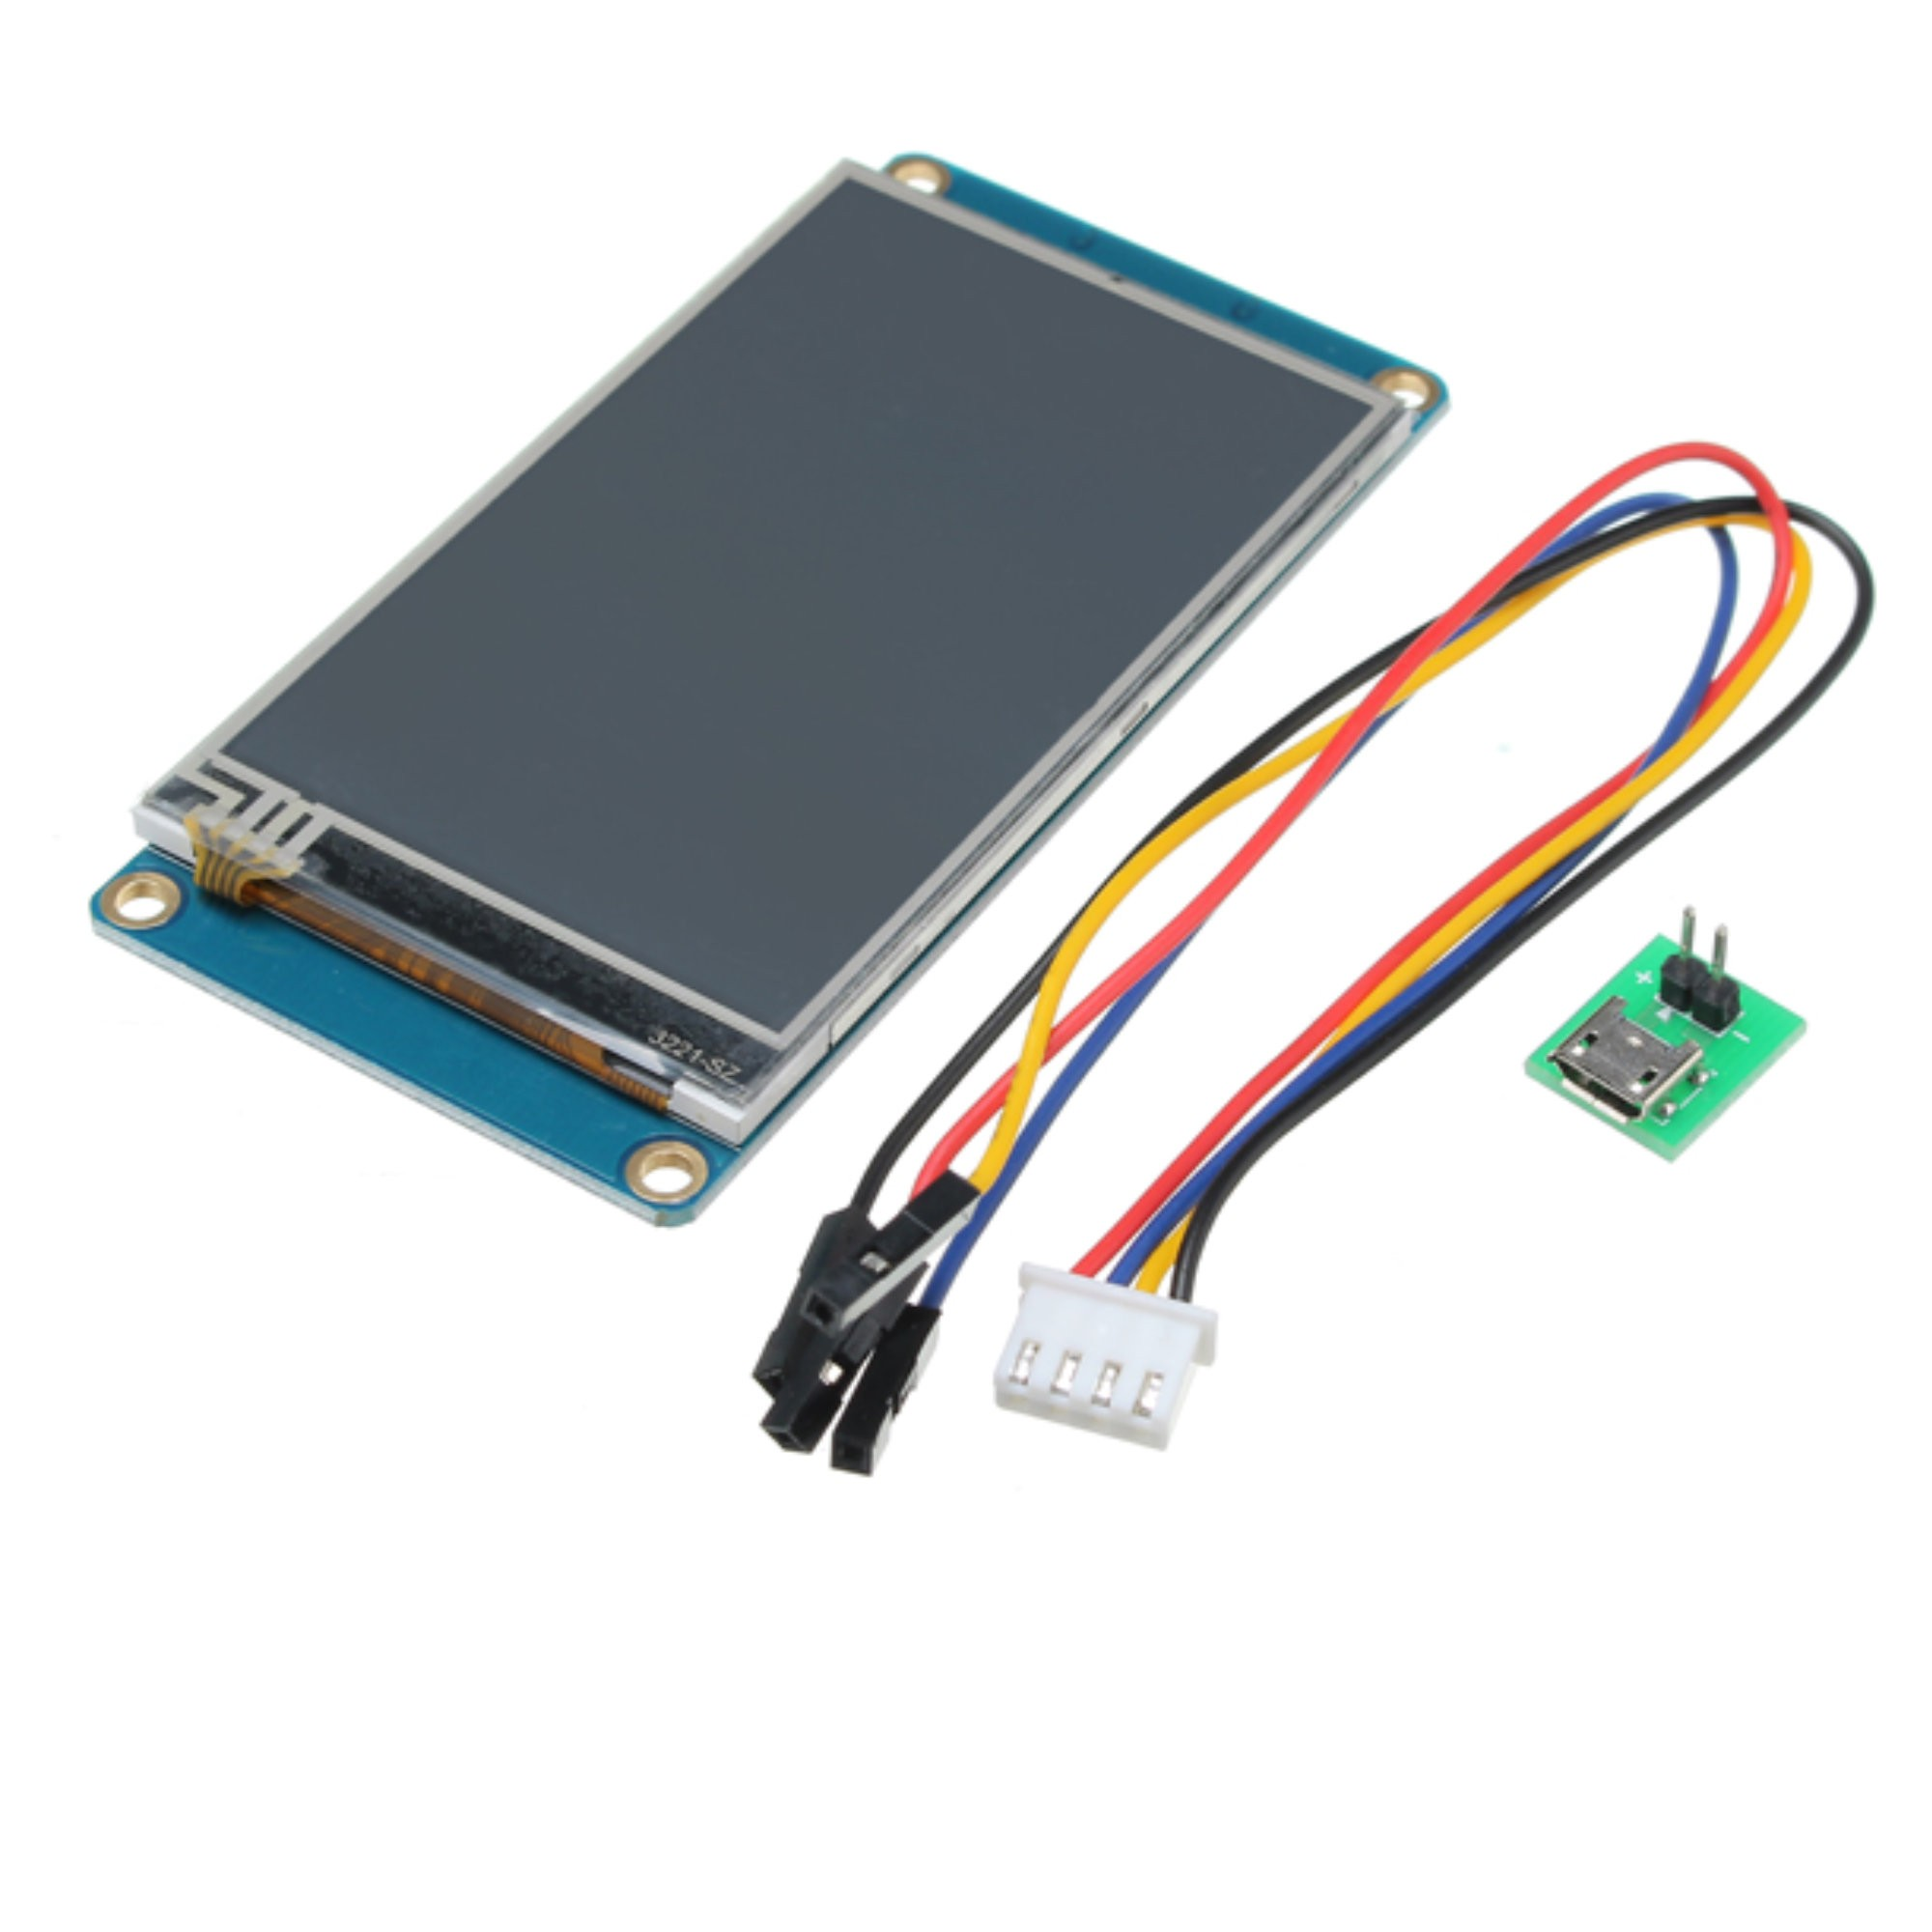 Nextion 2 8 inch NX3224T024 HMI Touch Screen for Arduino Raspberry Pi